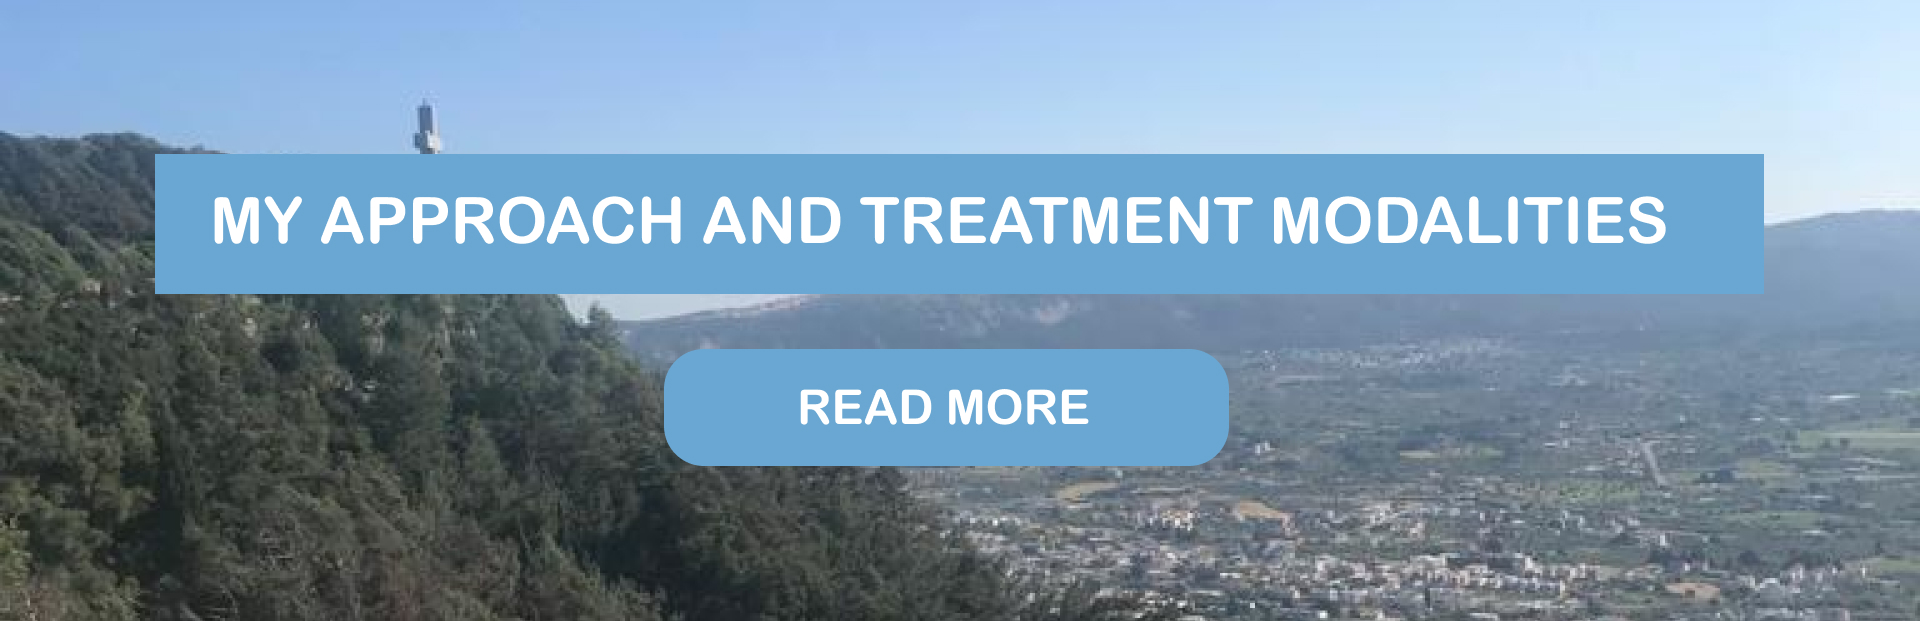 licensed clinical professional counselor approach and treatment modalities header image